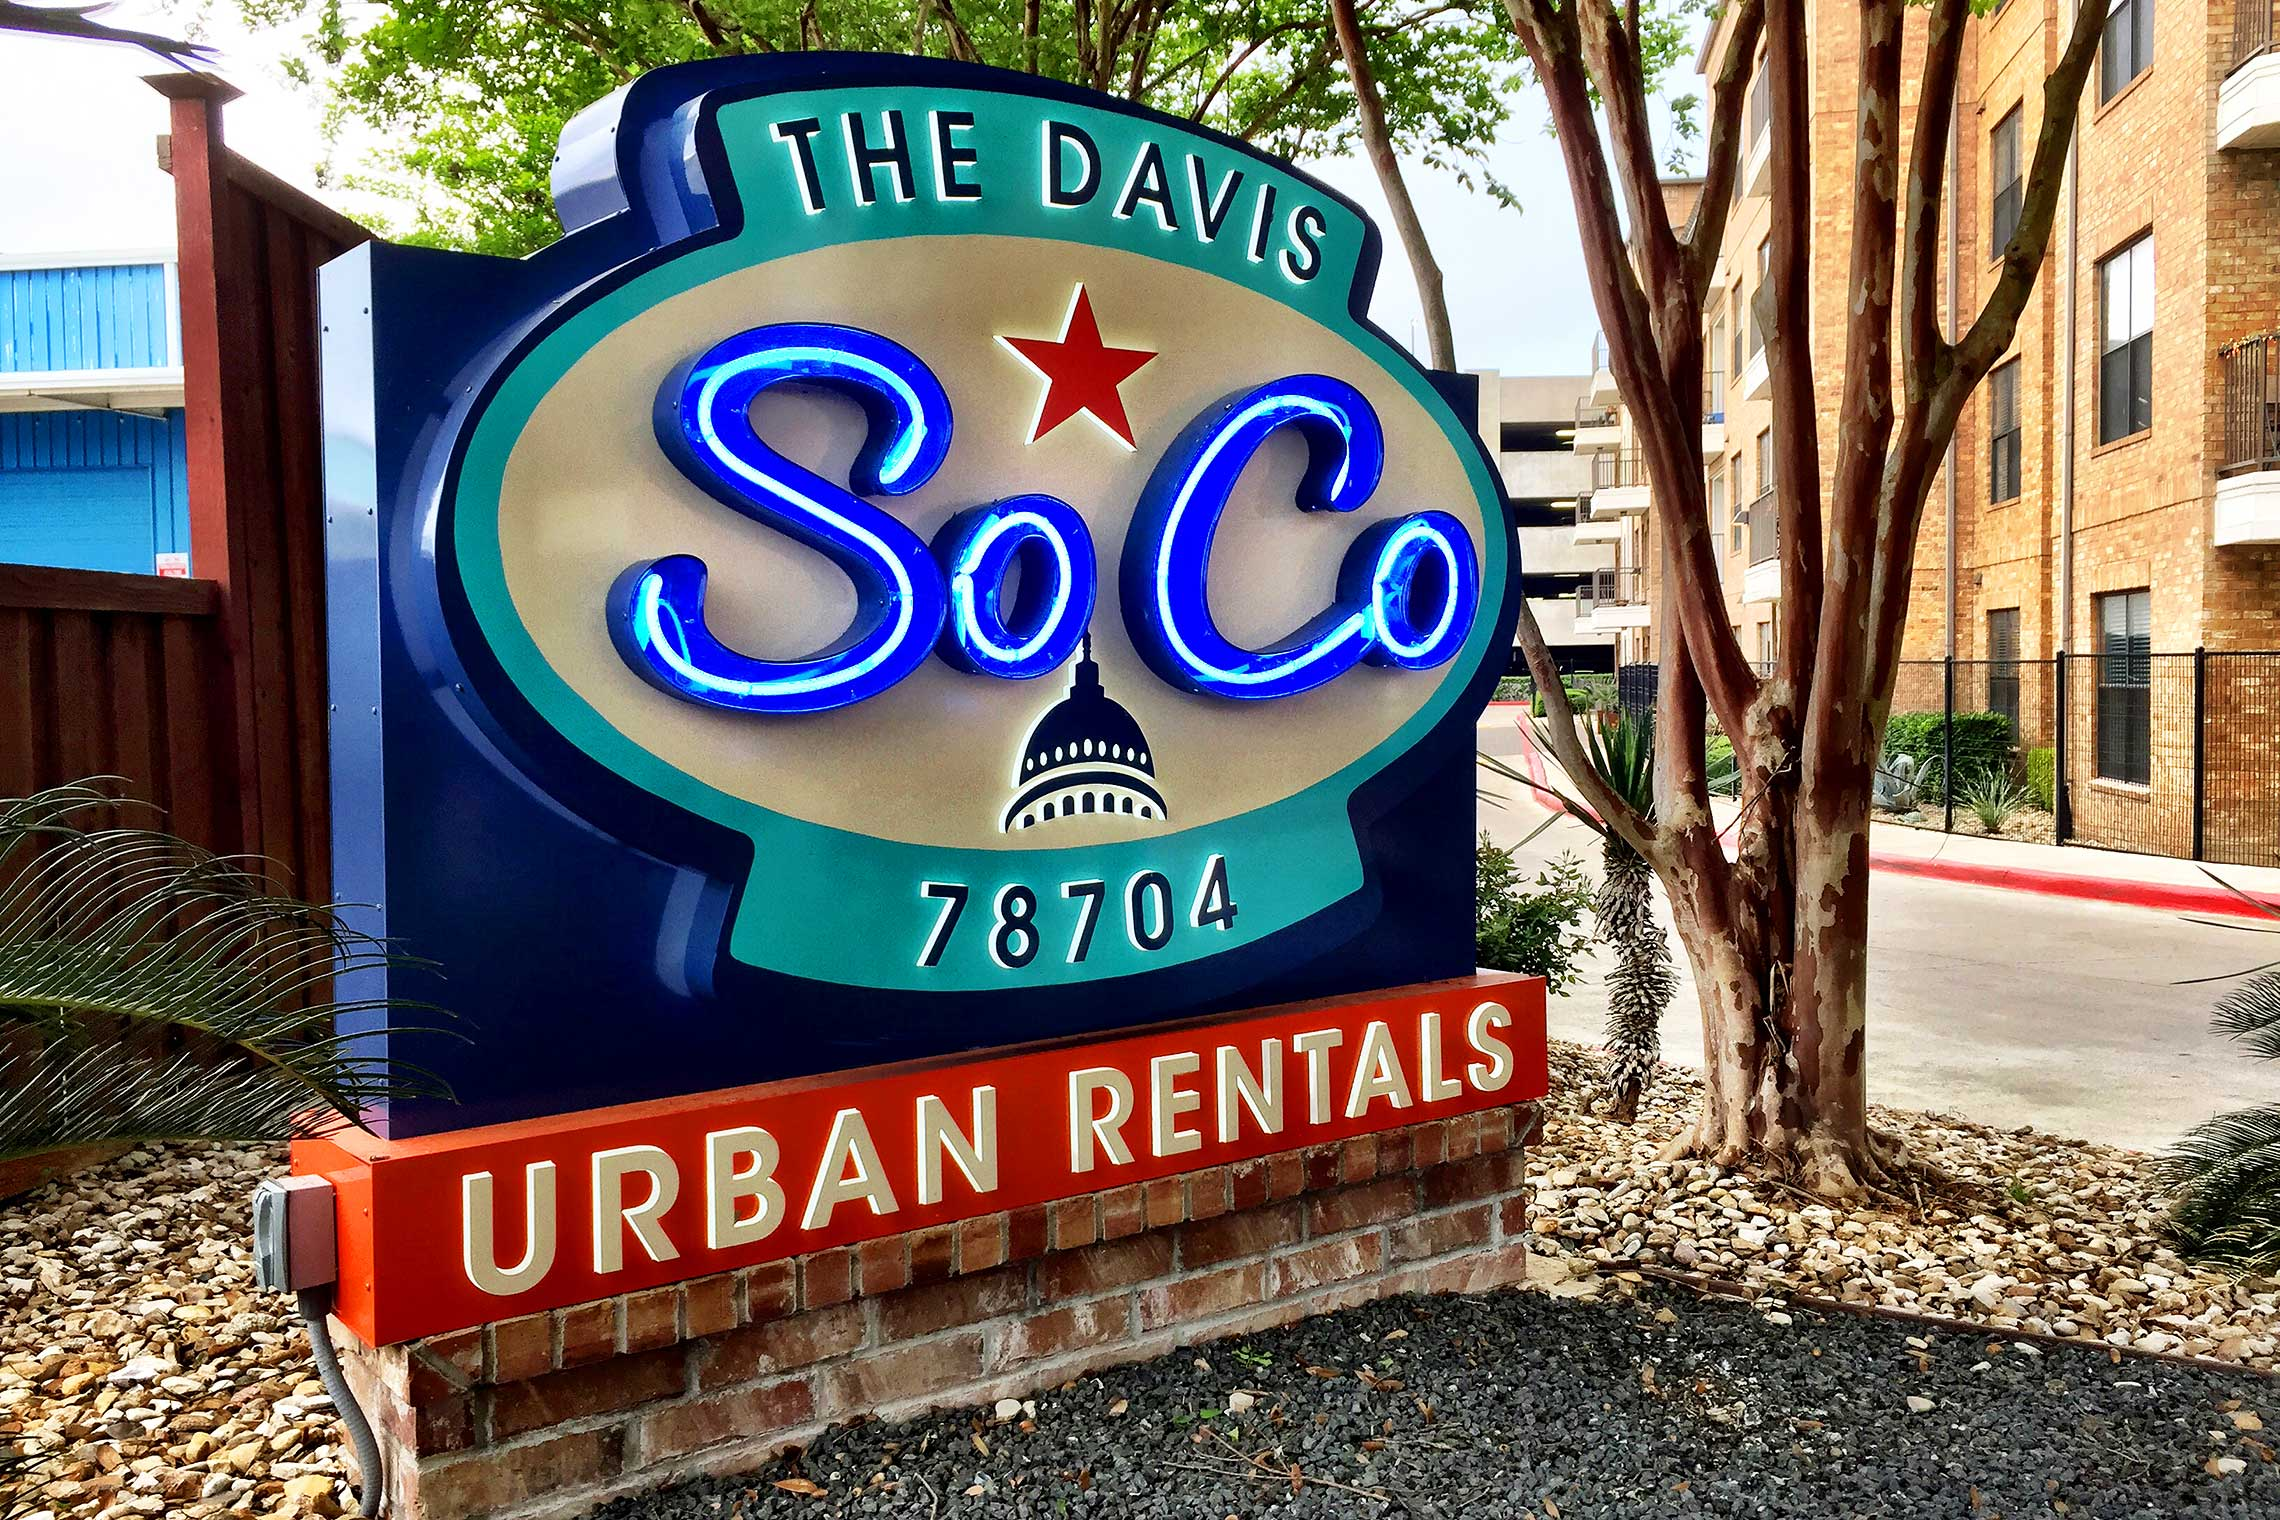 The Davis Soco Urban Rentals Retro-Inspired Illuminated Monument